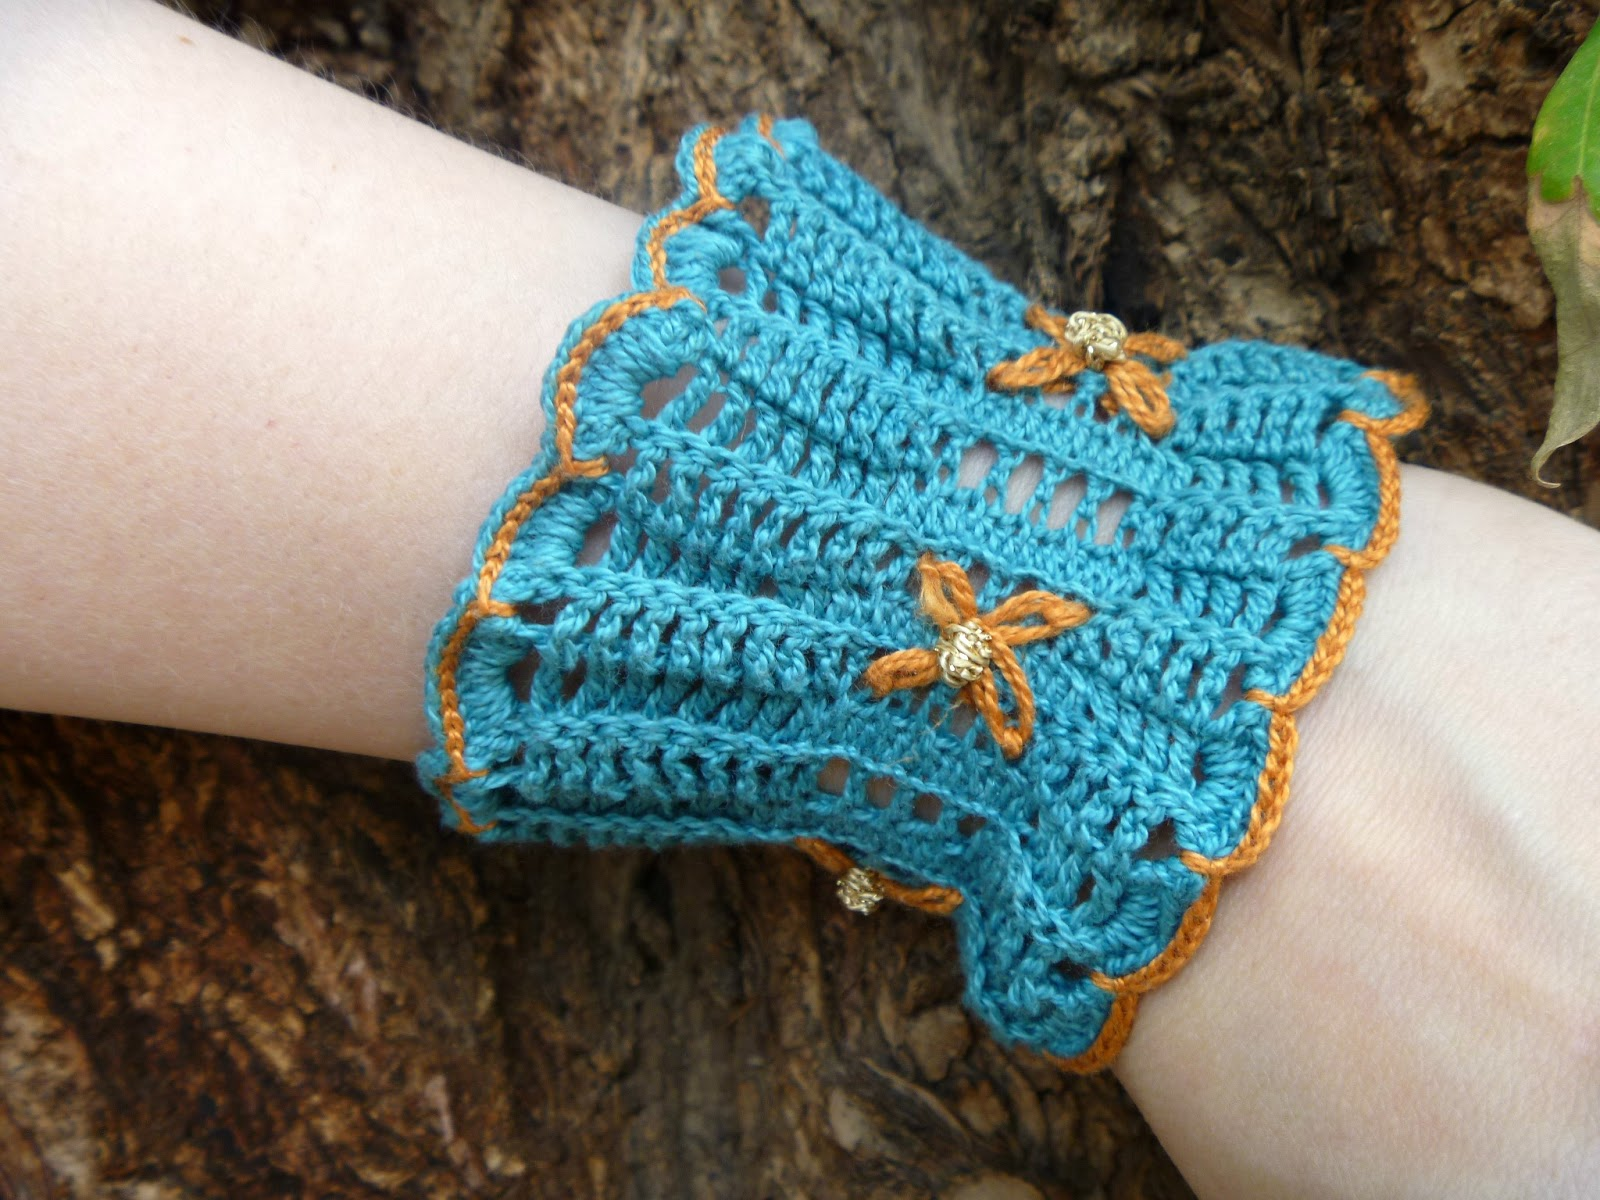 Stitch Story: How to Make a Wristlet with the Ruffles Scarf Pattern